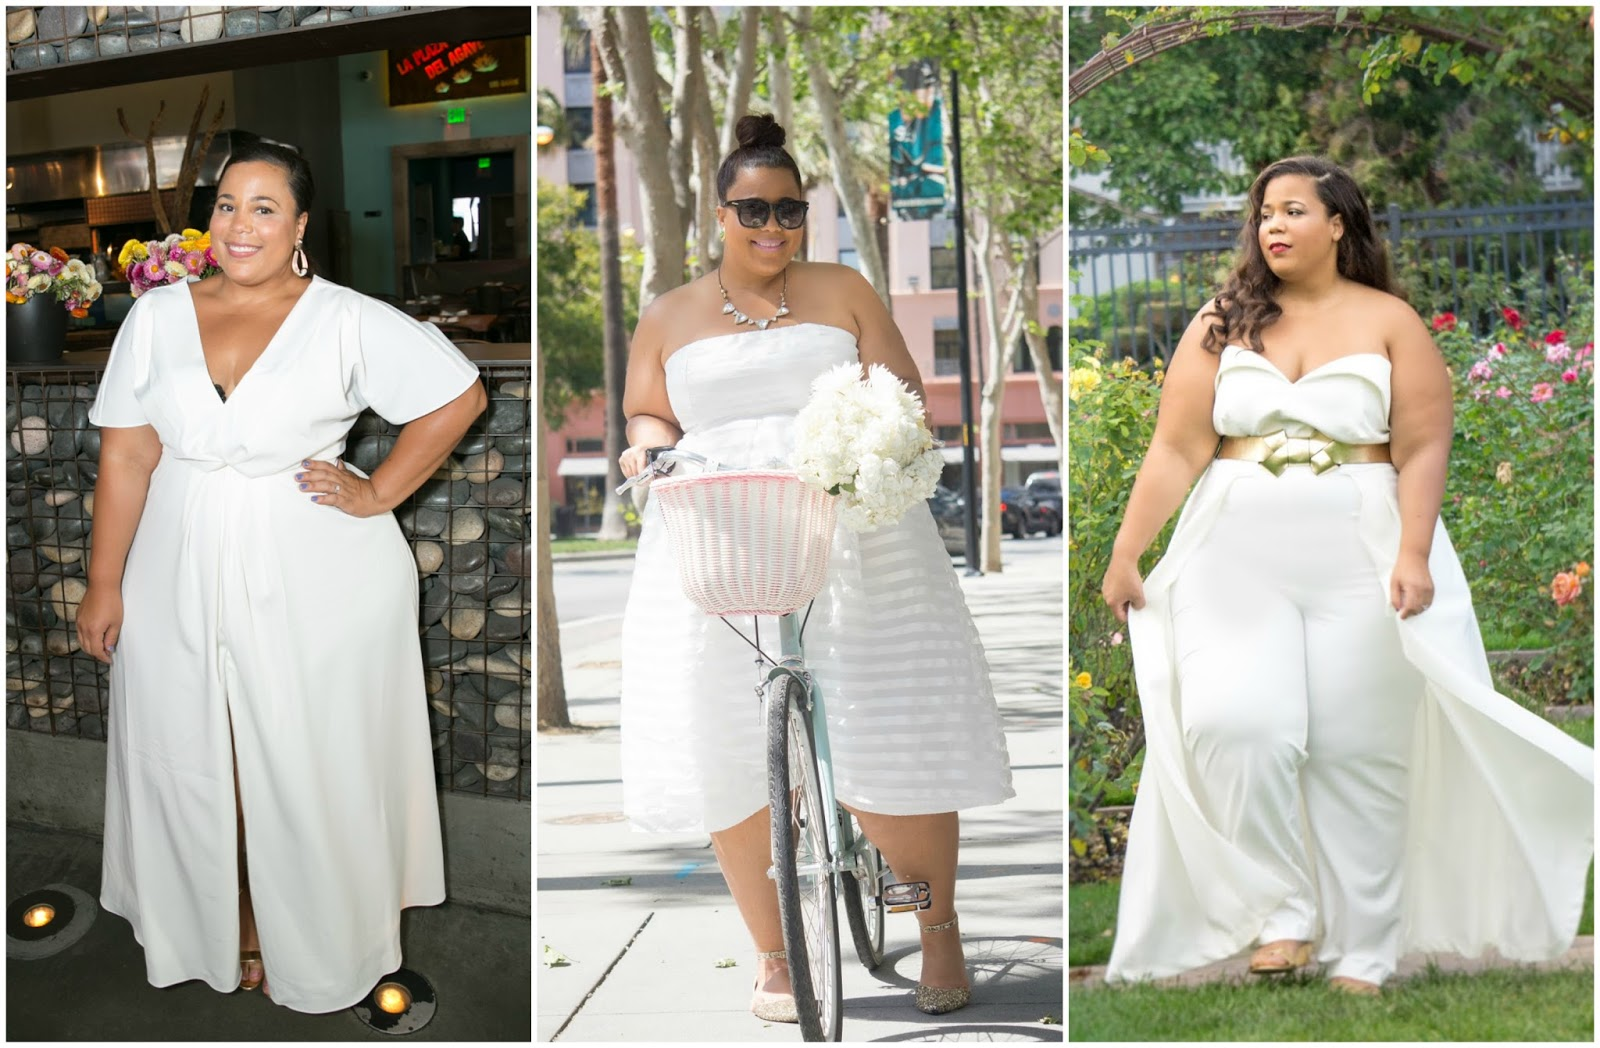 Alternative Looks for the Plus Size Bride - Garnerstyle